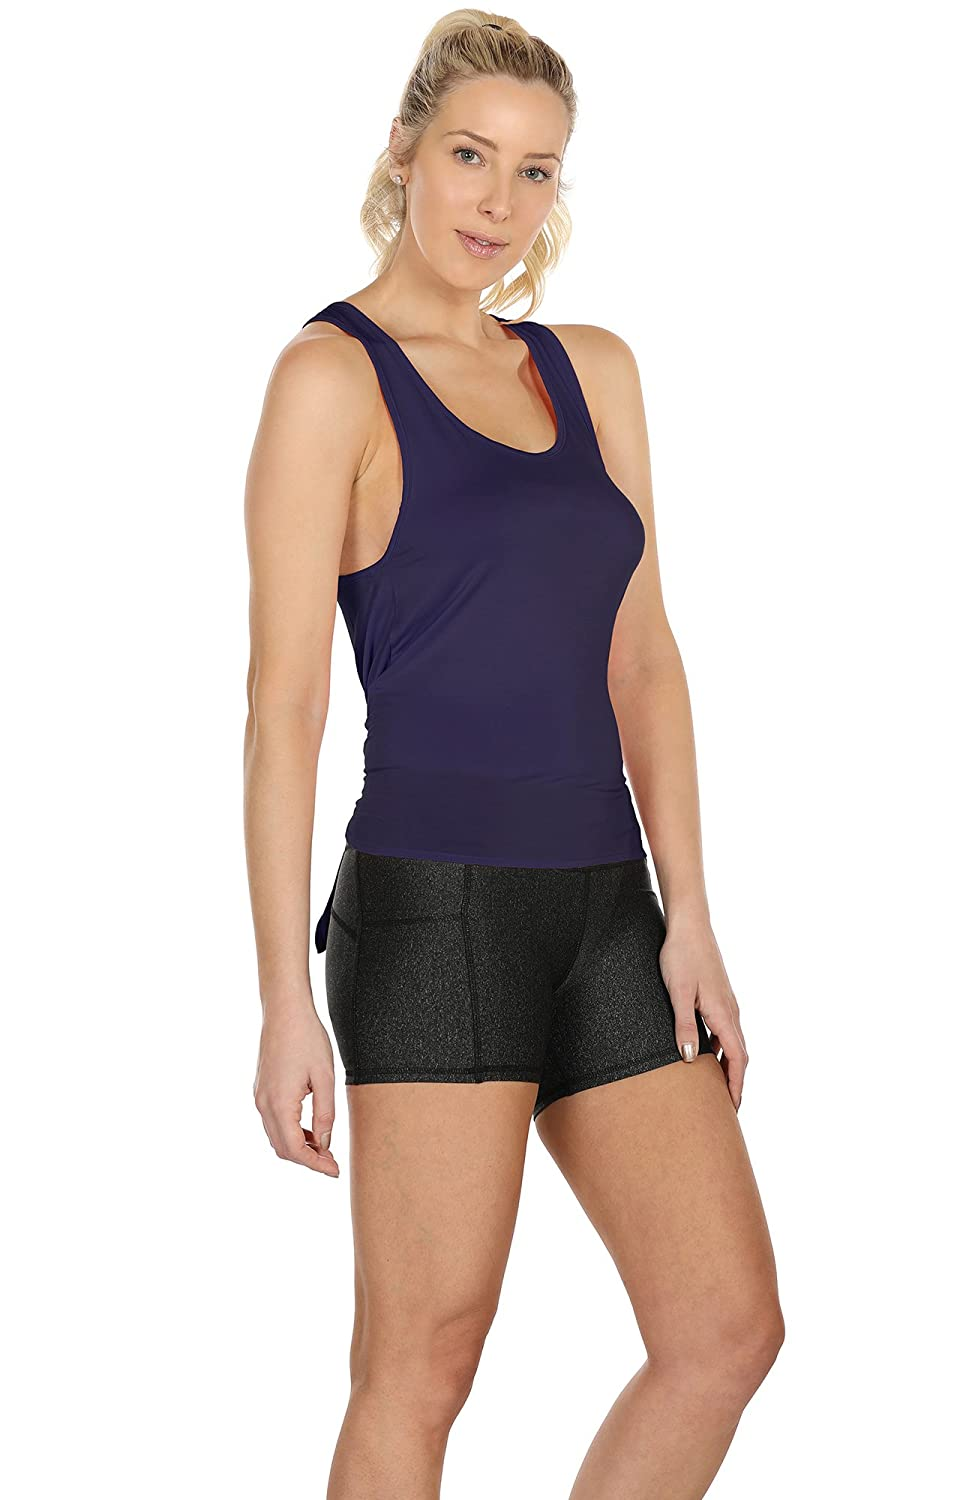 Athletic Activewear Shirts Exercise Yoga Tank Tops icyzone Open Back Workout Tops for Women